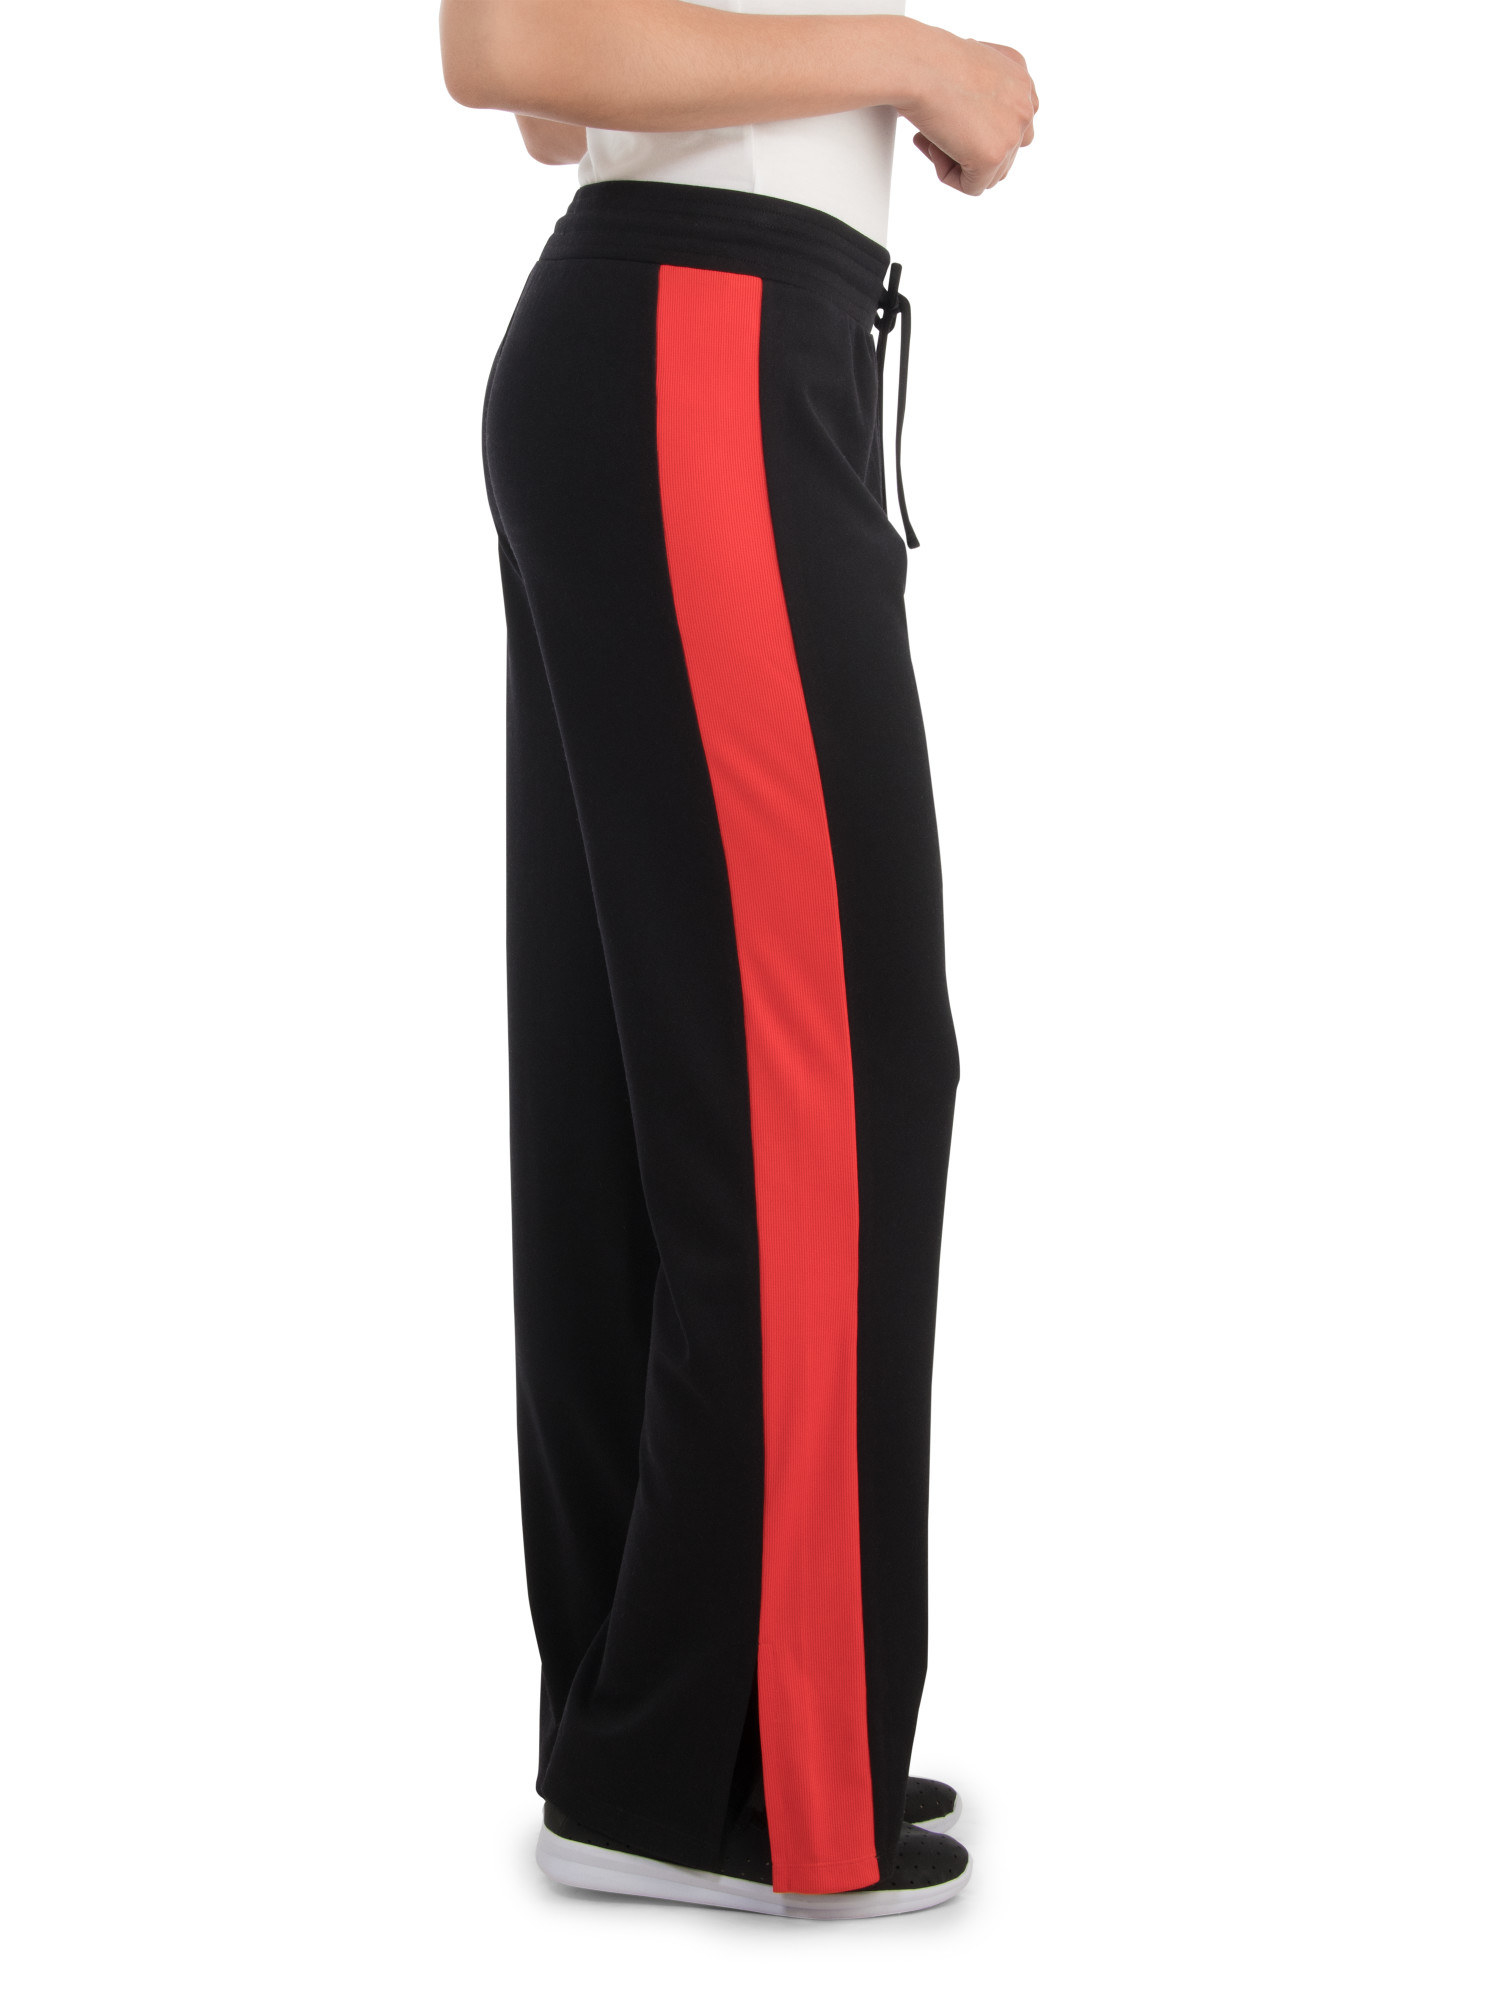 wide leg black pants with a red stripe down the side